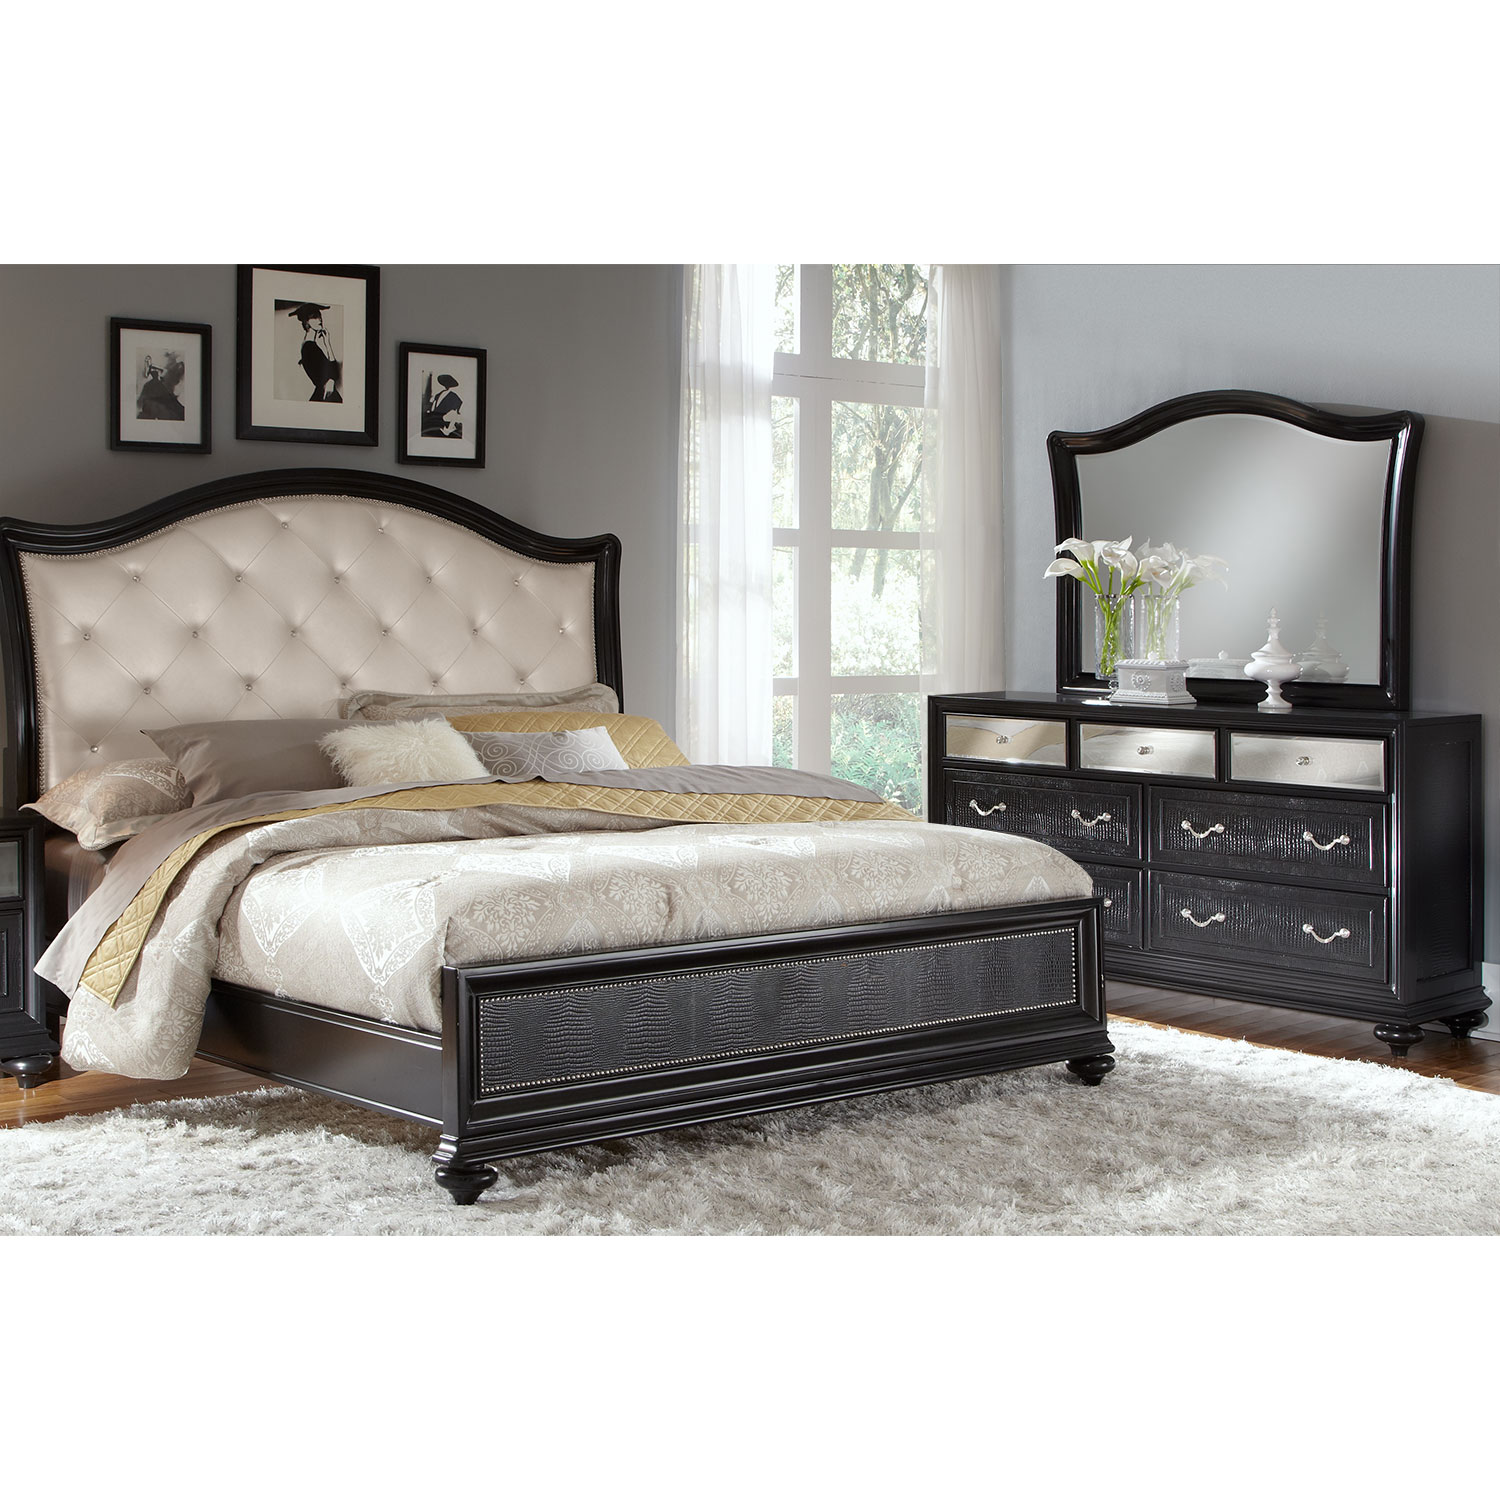 marilyn 5-piece king bedroom set - ebony | american signature